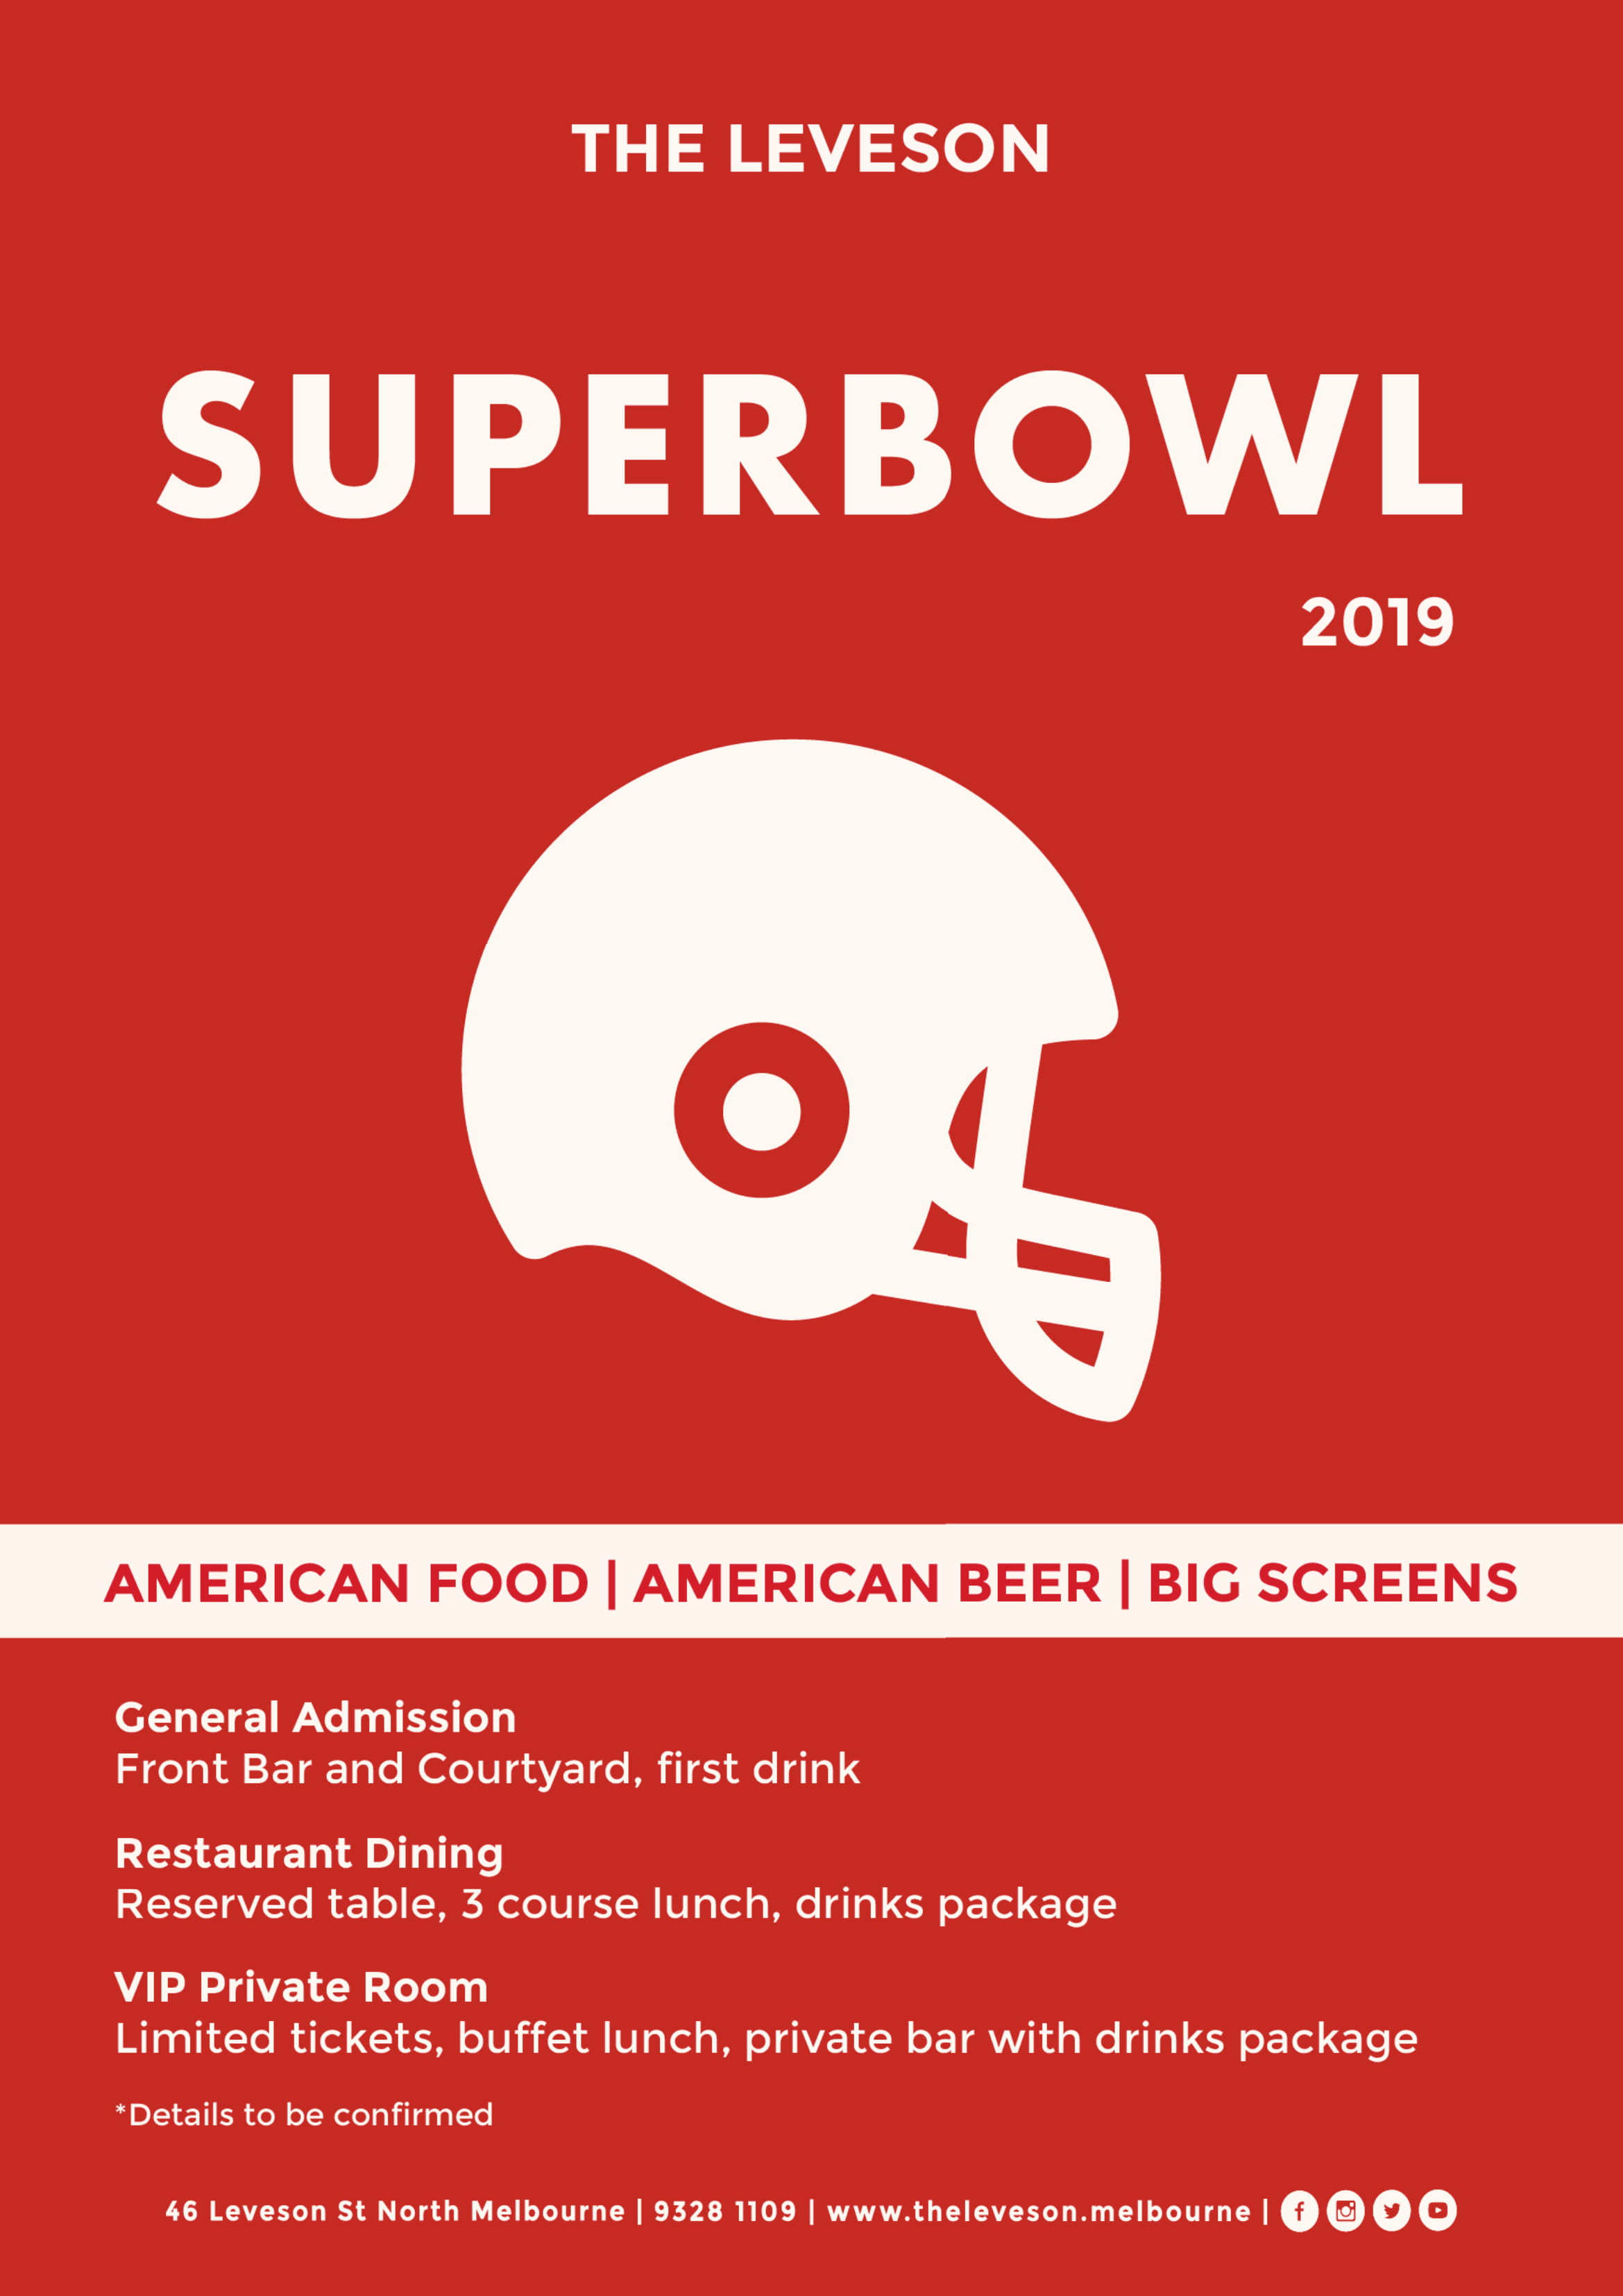 Superbowl Party - image Leveson_Superbowl19_A3-1 on https://theleveson.melbourne